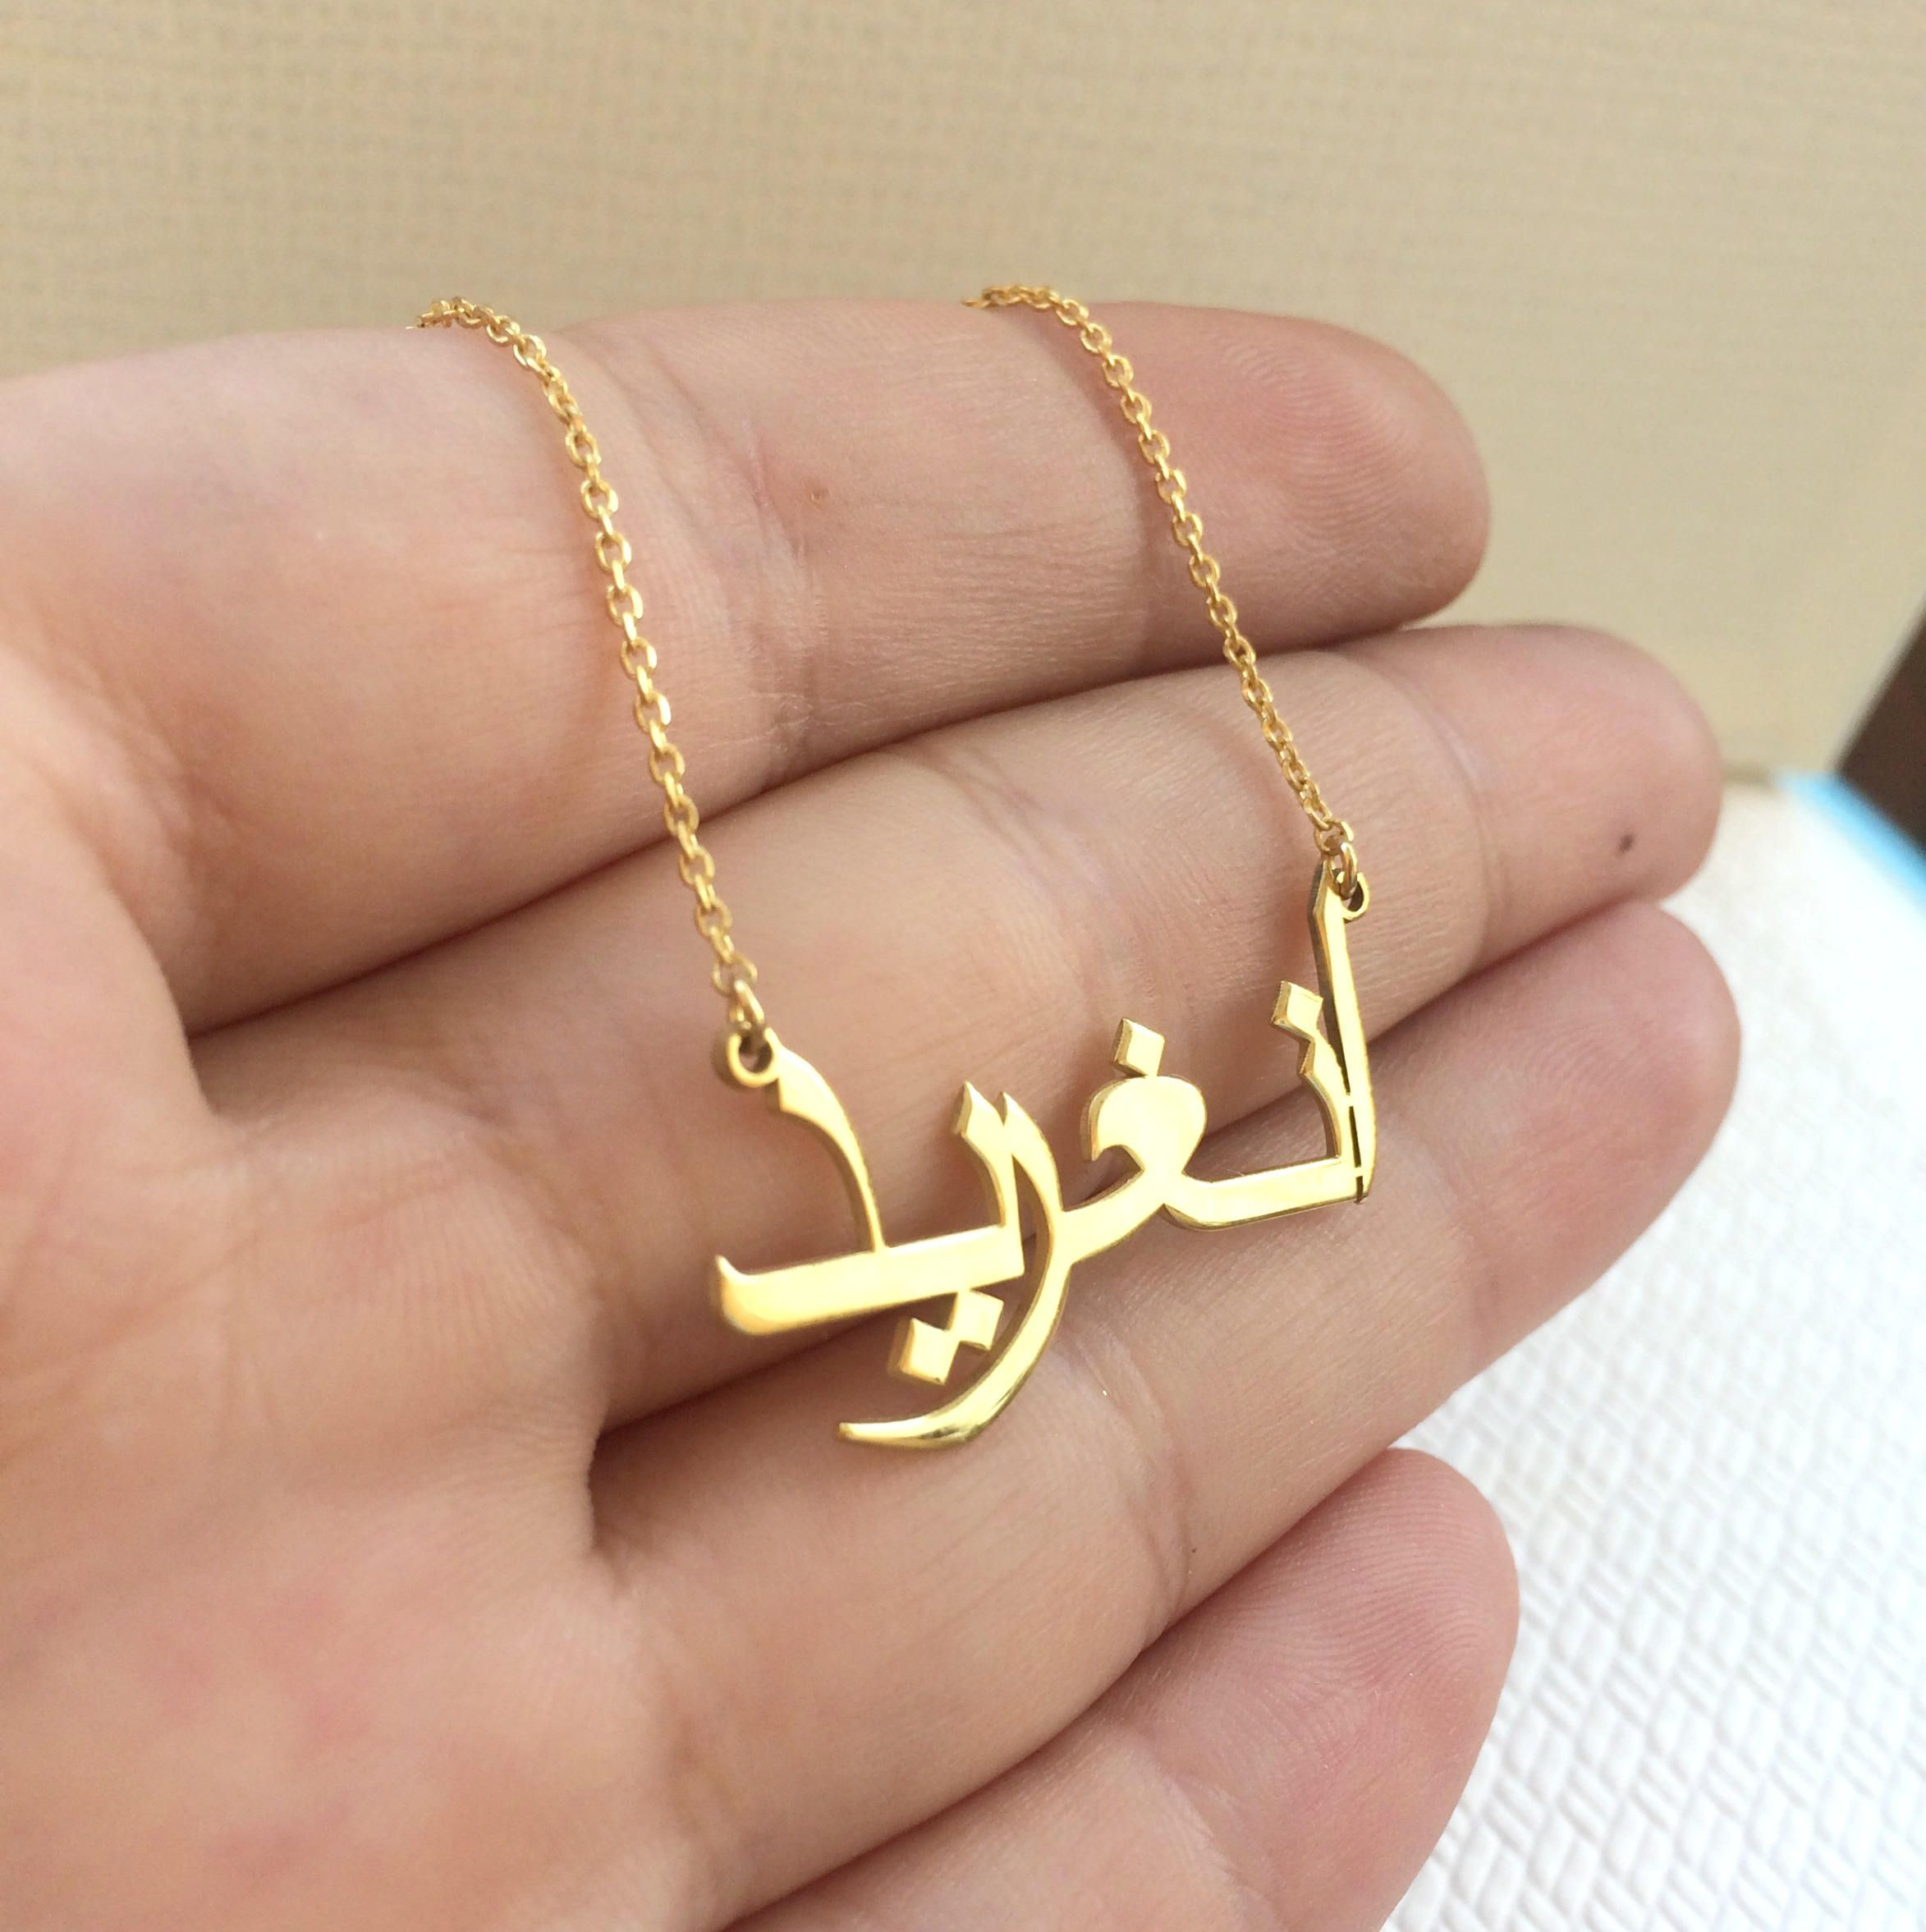 sxgfopwjvl products aral necklace letter arabic